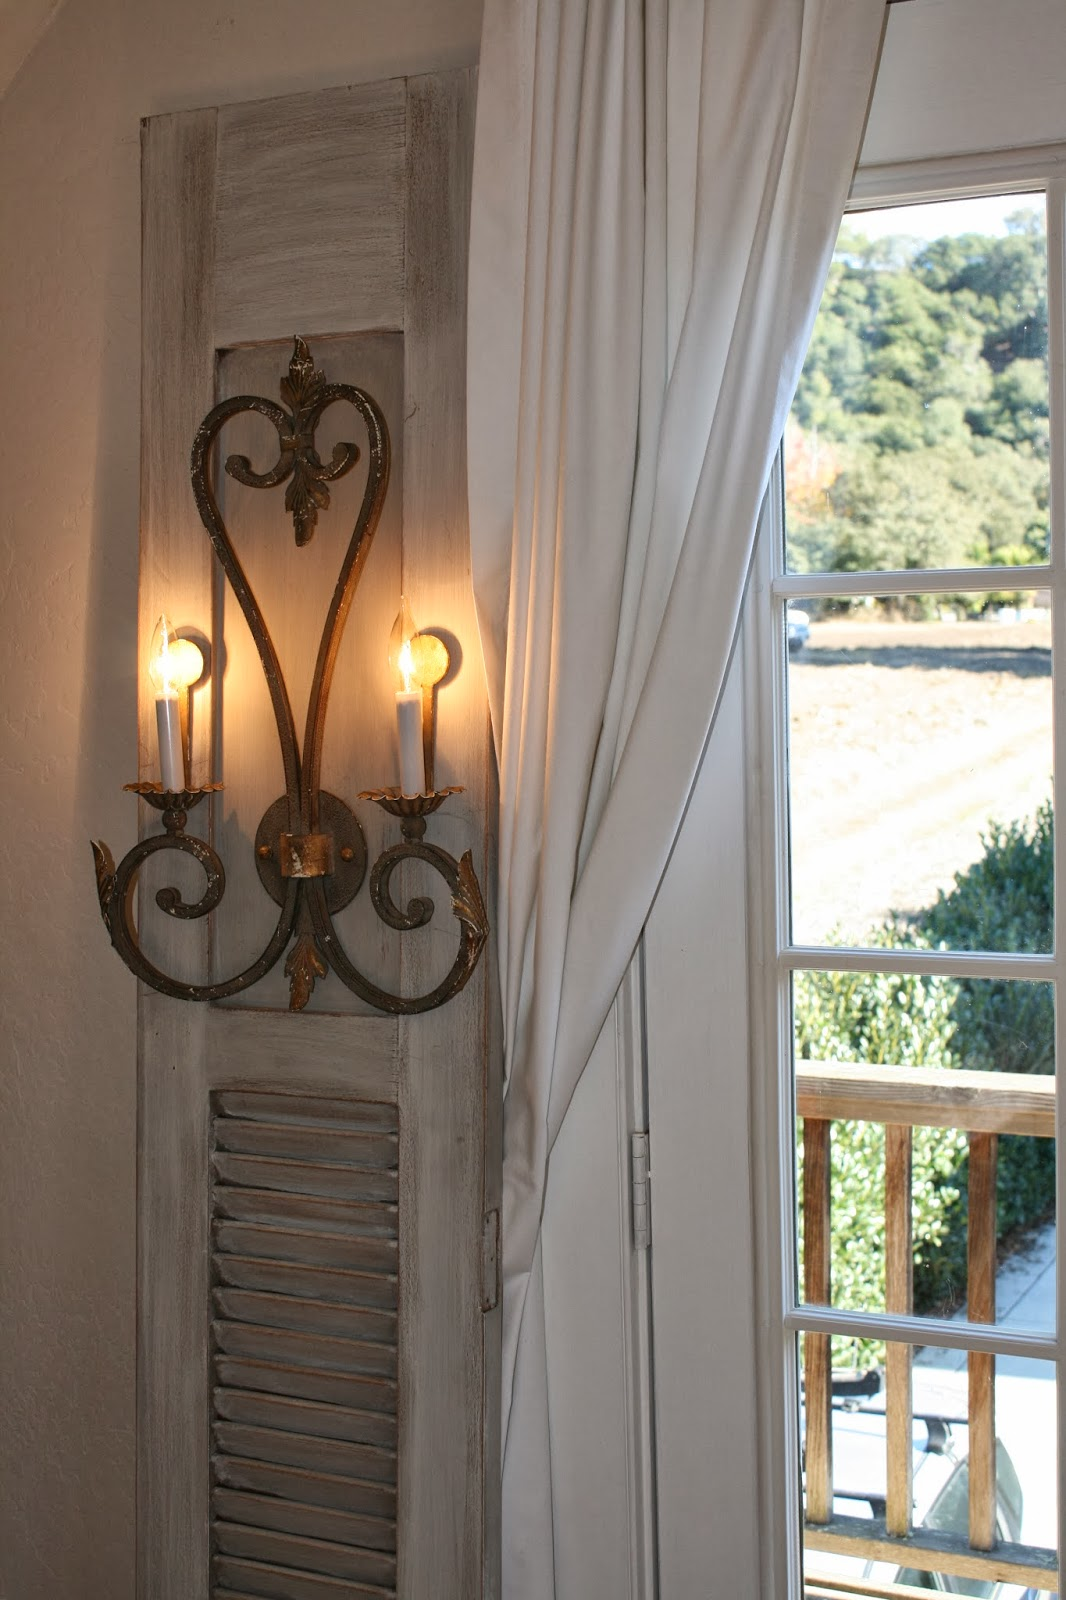 Reloved Rubbish Wall Sconces On Old Shutter Doors